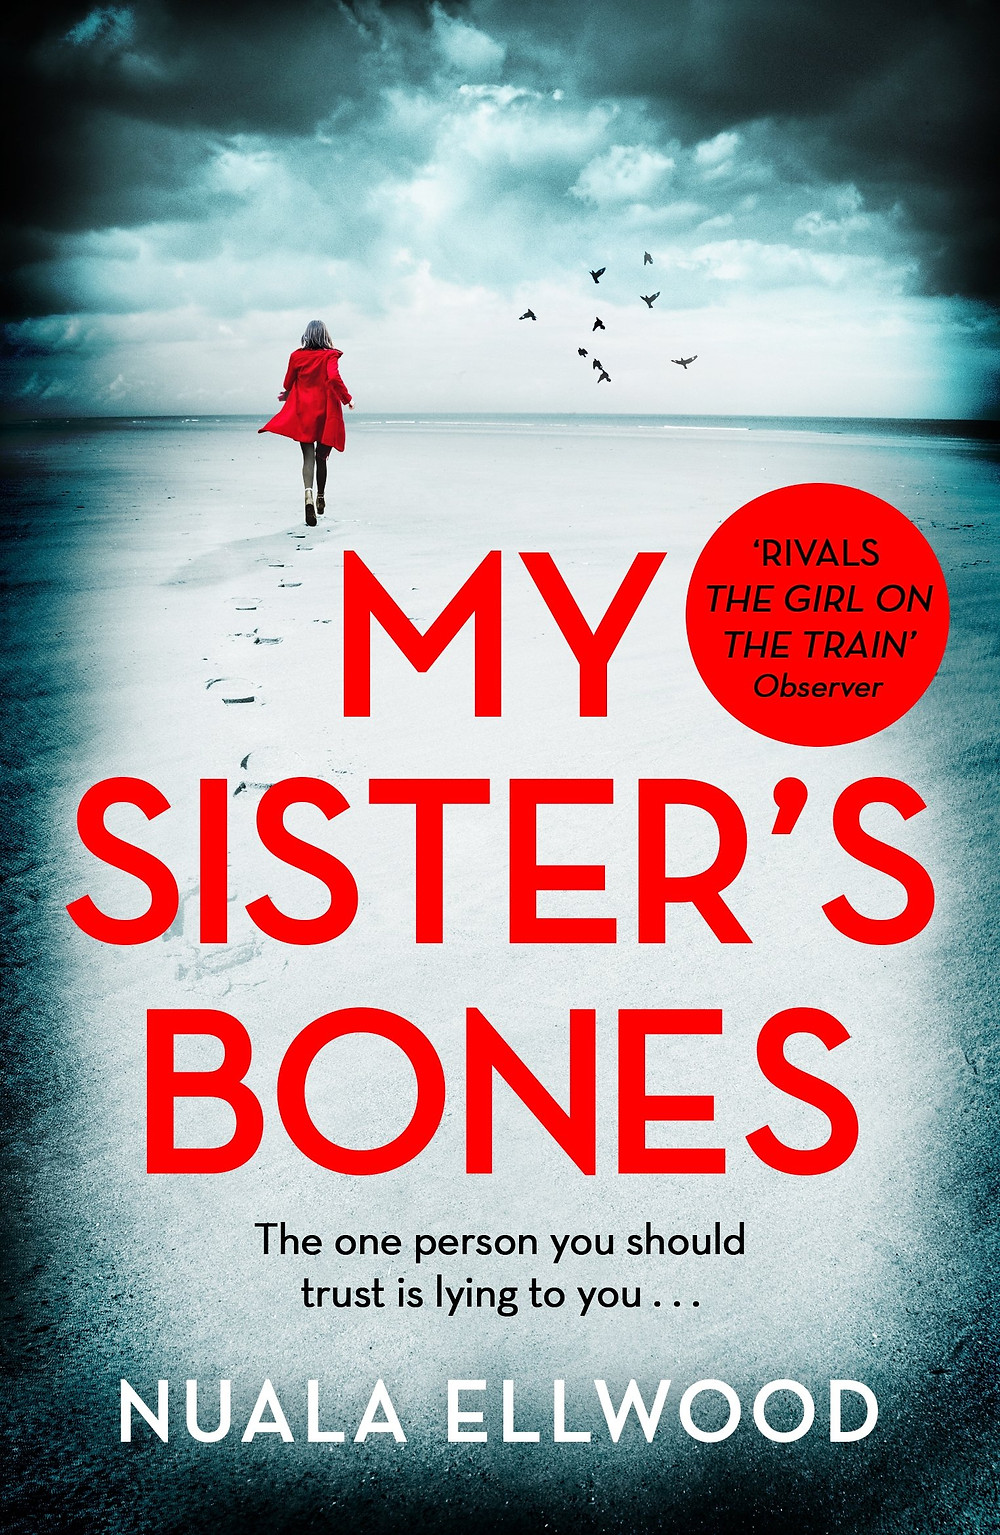 My Sister's Bones, by Nuala Ellwood. Review by Barbara Copperthwaite